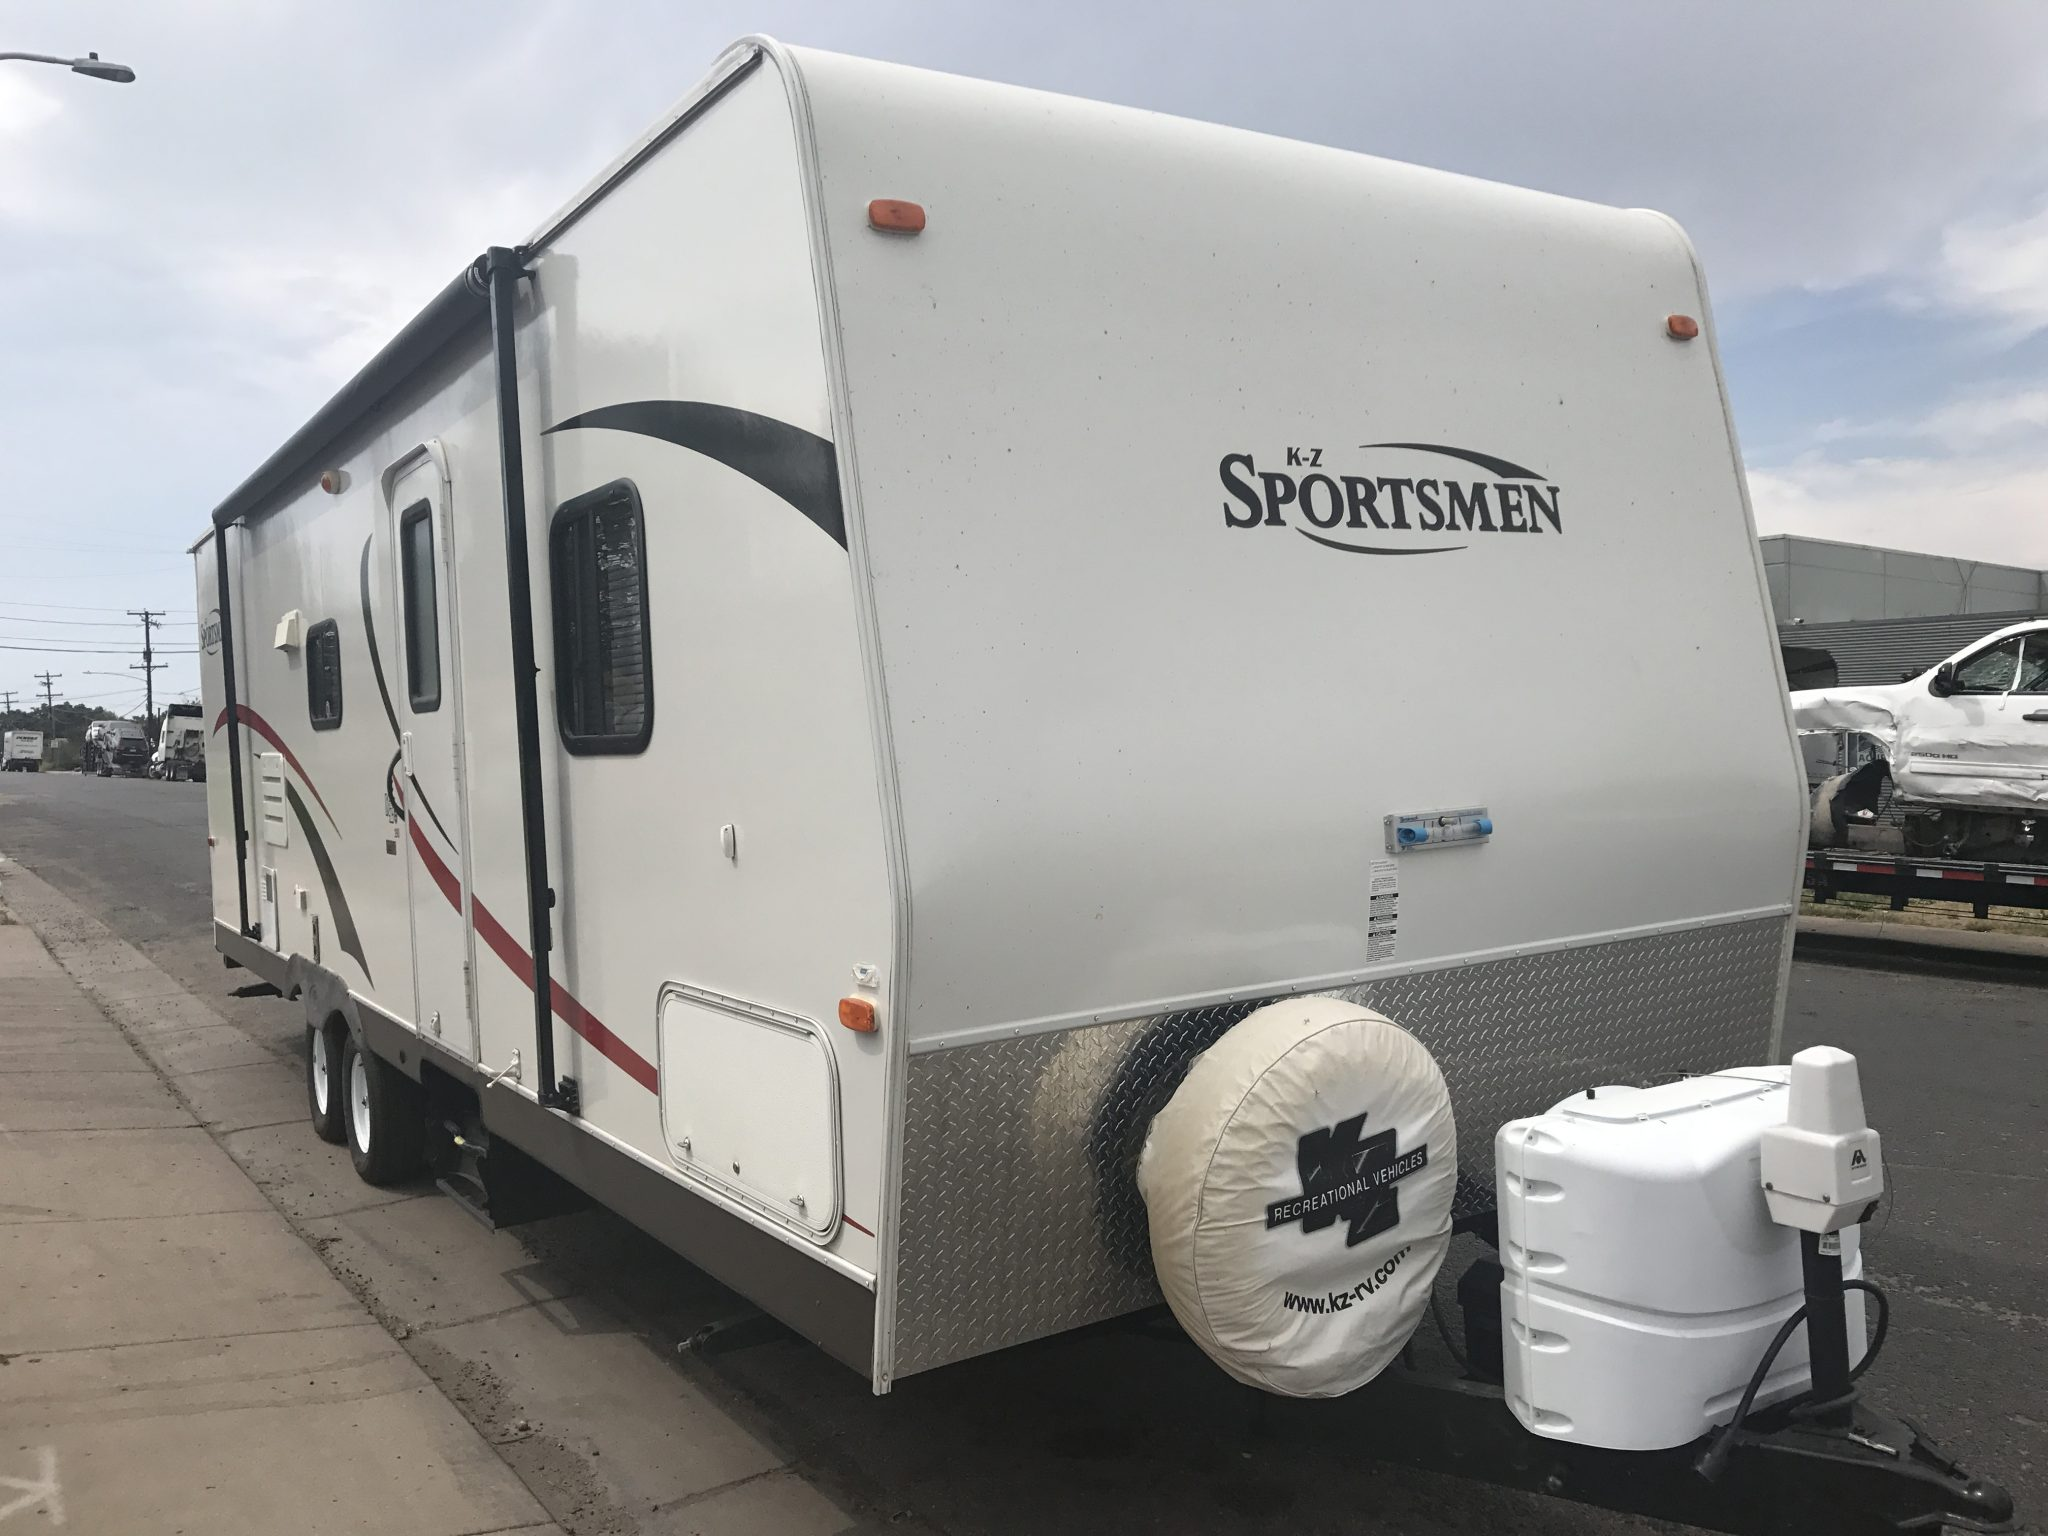 2011 K Z Sportsmen 290 Bumper Pull Travel Trailer 1 Slide